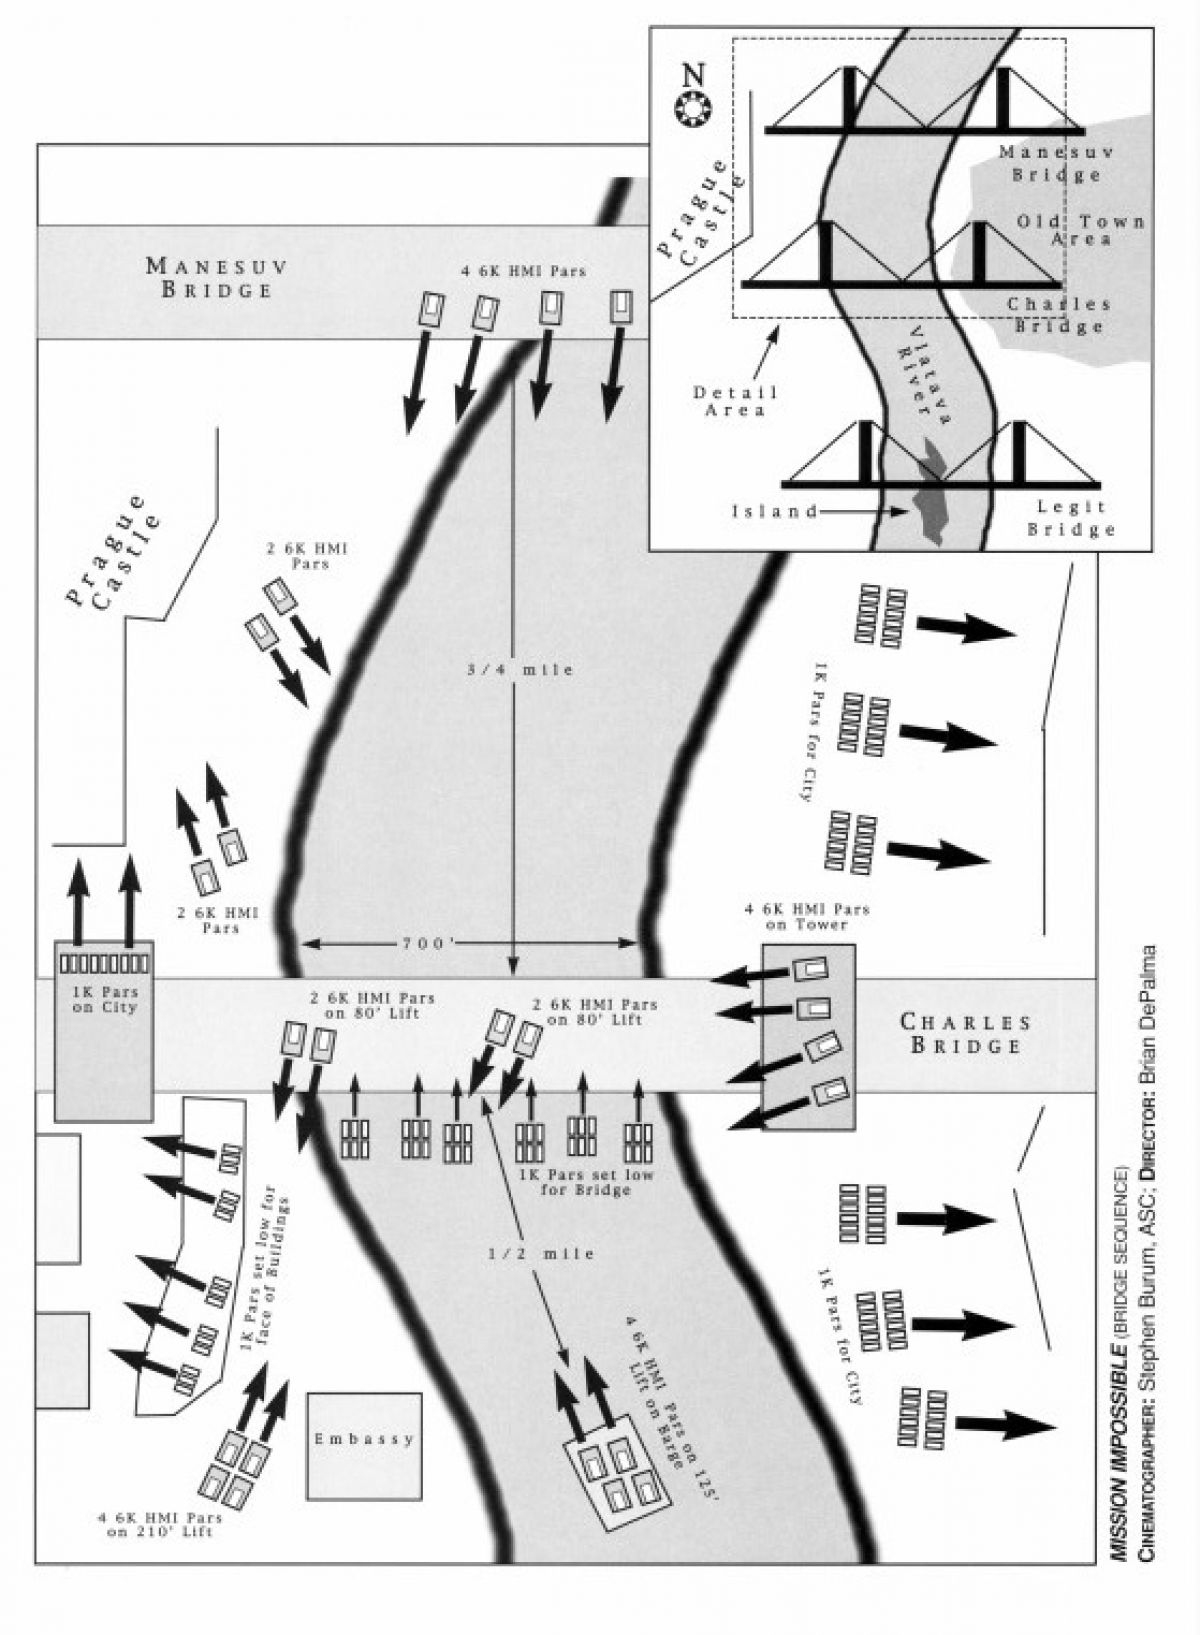 """Following his strategy of backlighting for night scenes, Burum devised a complex system for a 12-day shoot along the Vlatava River — which primarily used the historic Charles Bridge and the area around the Embassy (lower-left corner of the diagram). He explains, 'The four 6K HMIs on the Manesuv Bridge were backlights for the water, while the two 6Ks on the shore backlit the underside arches of the Charles."""" On the stone bridge itself, the two sets of 6Ks on lifts were only used when the camera was pointed north. While shooting south, the four 6Ks on a 210' lift near the Embassy were utilized. And when shooting east, the four tower-mounted 6Ks were used. Burum details, """"The 6Ks on the barge were used to crosslight when looking east or west on the Charles, and we had about 450 IK Pars to light the city in the background. The IKs lighting the face of the Charles were at the water's edge, mounted on pilings driven into the river bottom. The pilings were designed to break up ice during the winter and already had lights mounted there, so we took advantage of those positions. In all, we had about 50 footcandles for the key, so we were shooting at an f4 on 5298. """"It took about two weeks to lay  all the cable and we had 11 generators, with everything — including 24 brand-new 6K HMI Pars — all supplied by Lee Electric in London."""""""